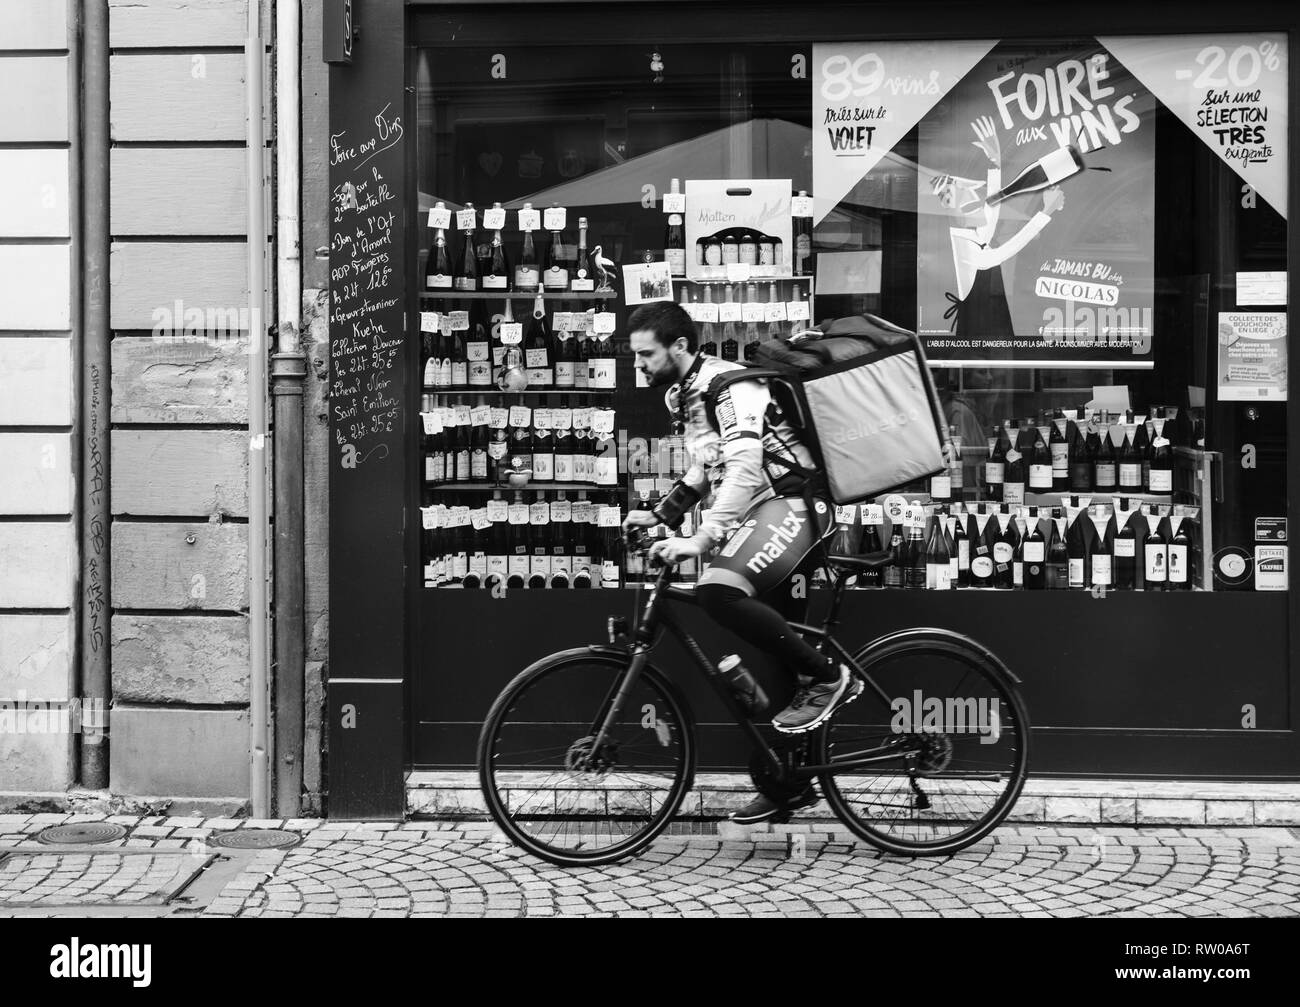 Strasbourg, France - Oct 1, 2017: Blacck and white image of Deliveroo biker wearing cycling branded outfit.  The online food delivery company was founded in 2013 by Will Shu and Greg Orlowski - Stock Image